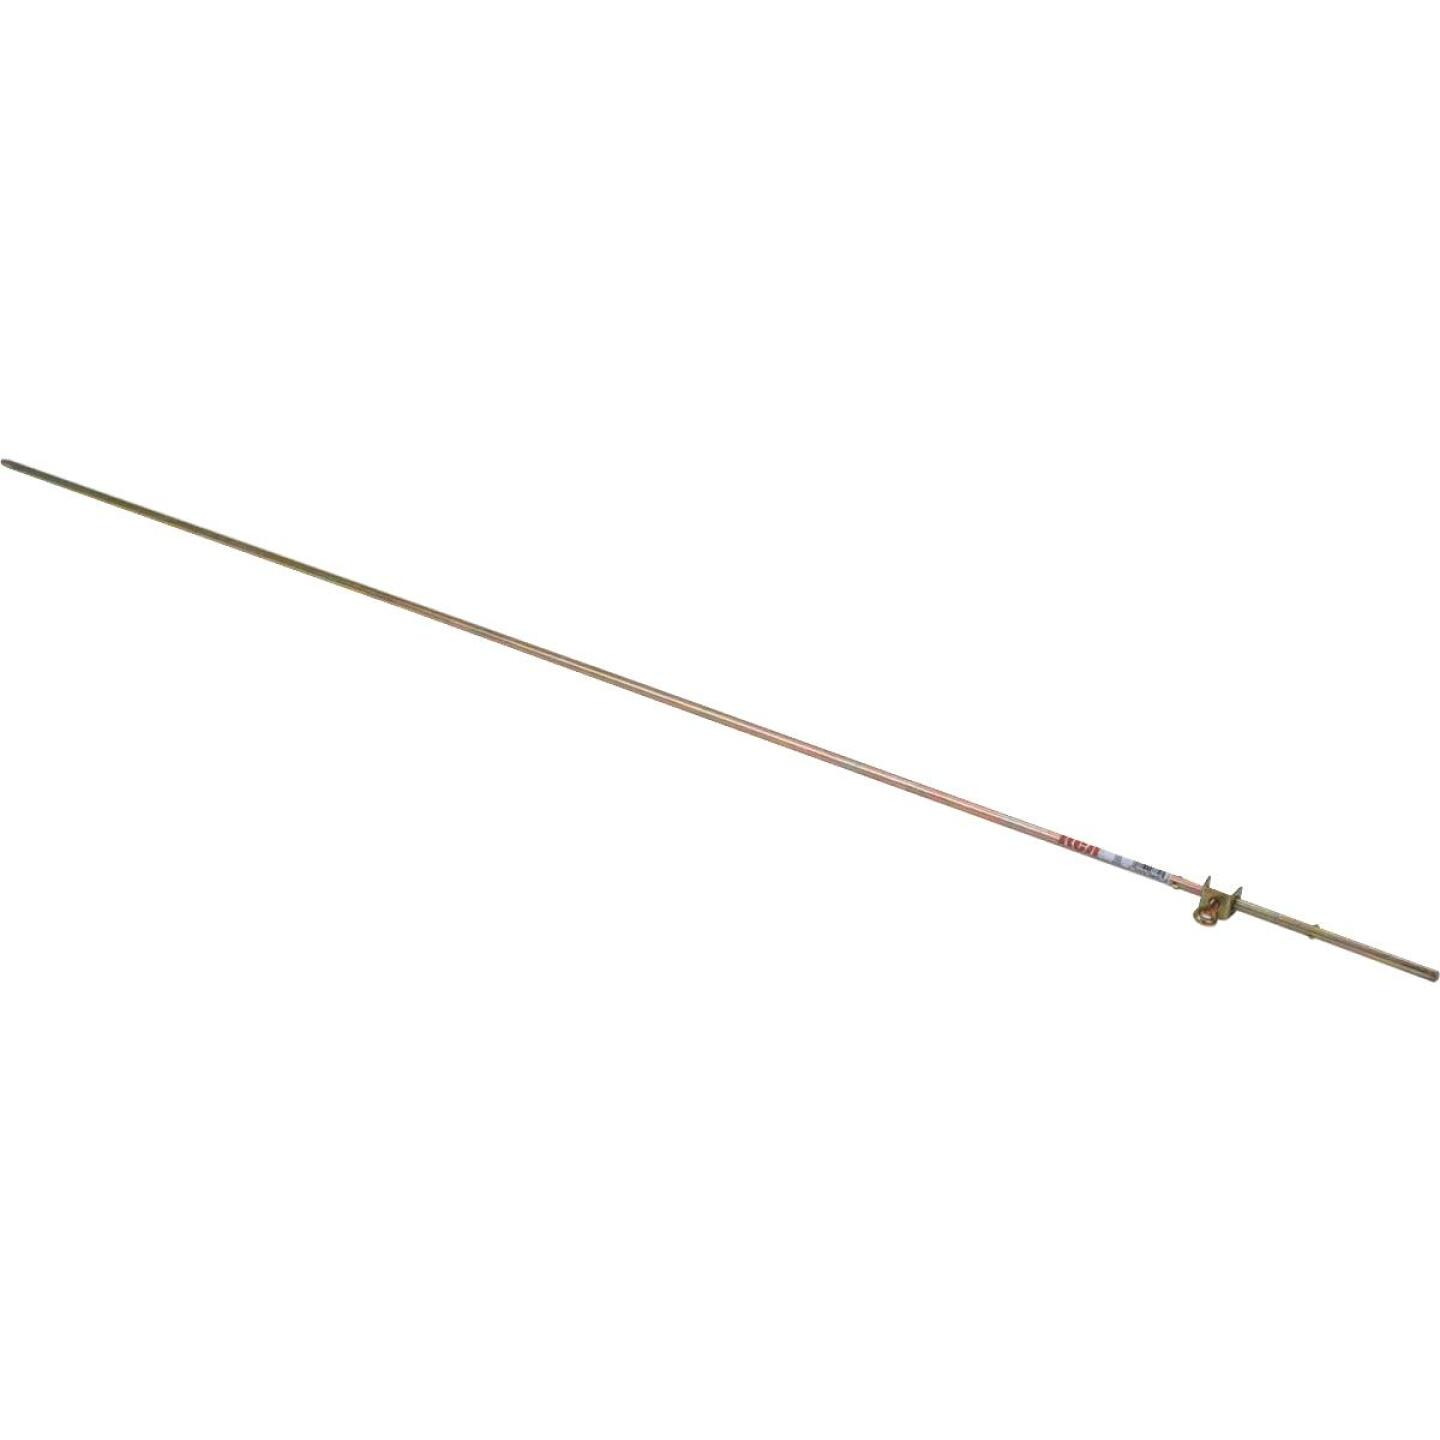 RCA 3/8 In. x 4 Ft. Antenna Ground Rod Image 1